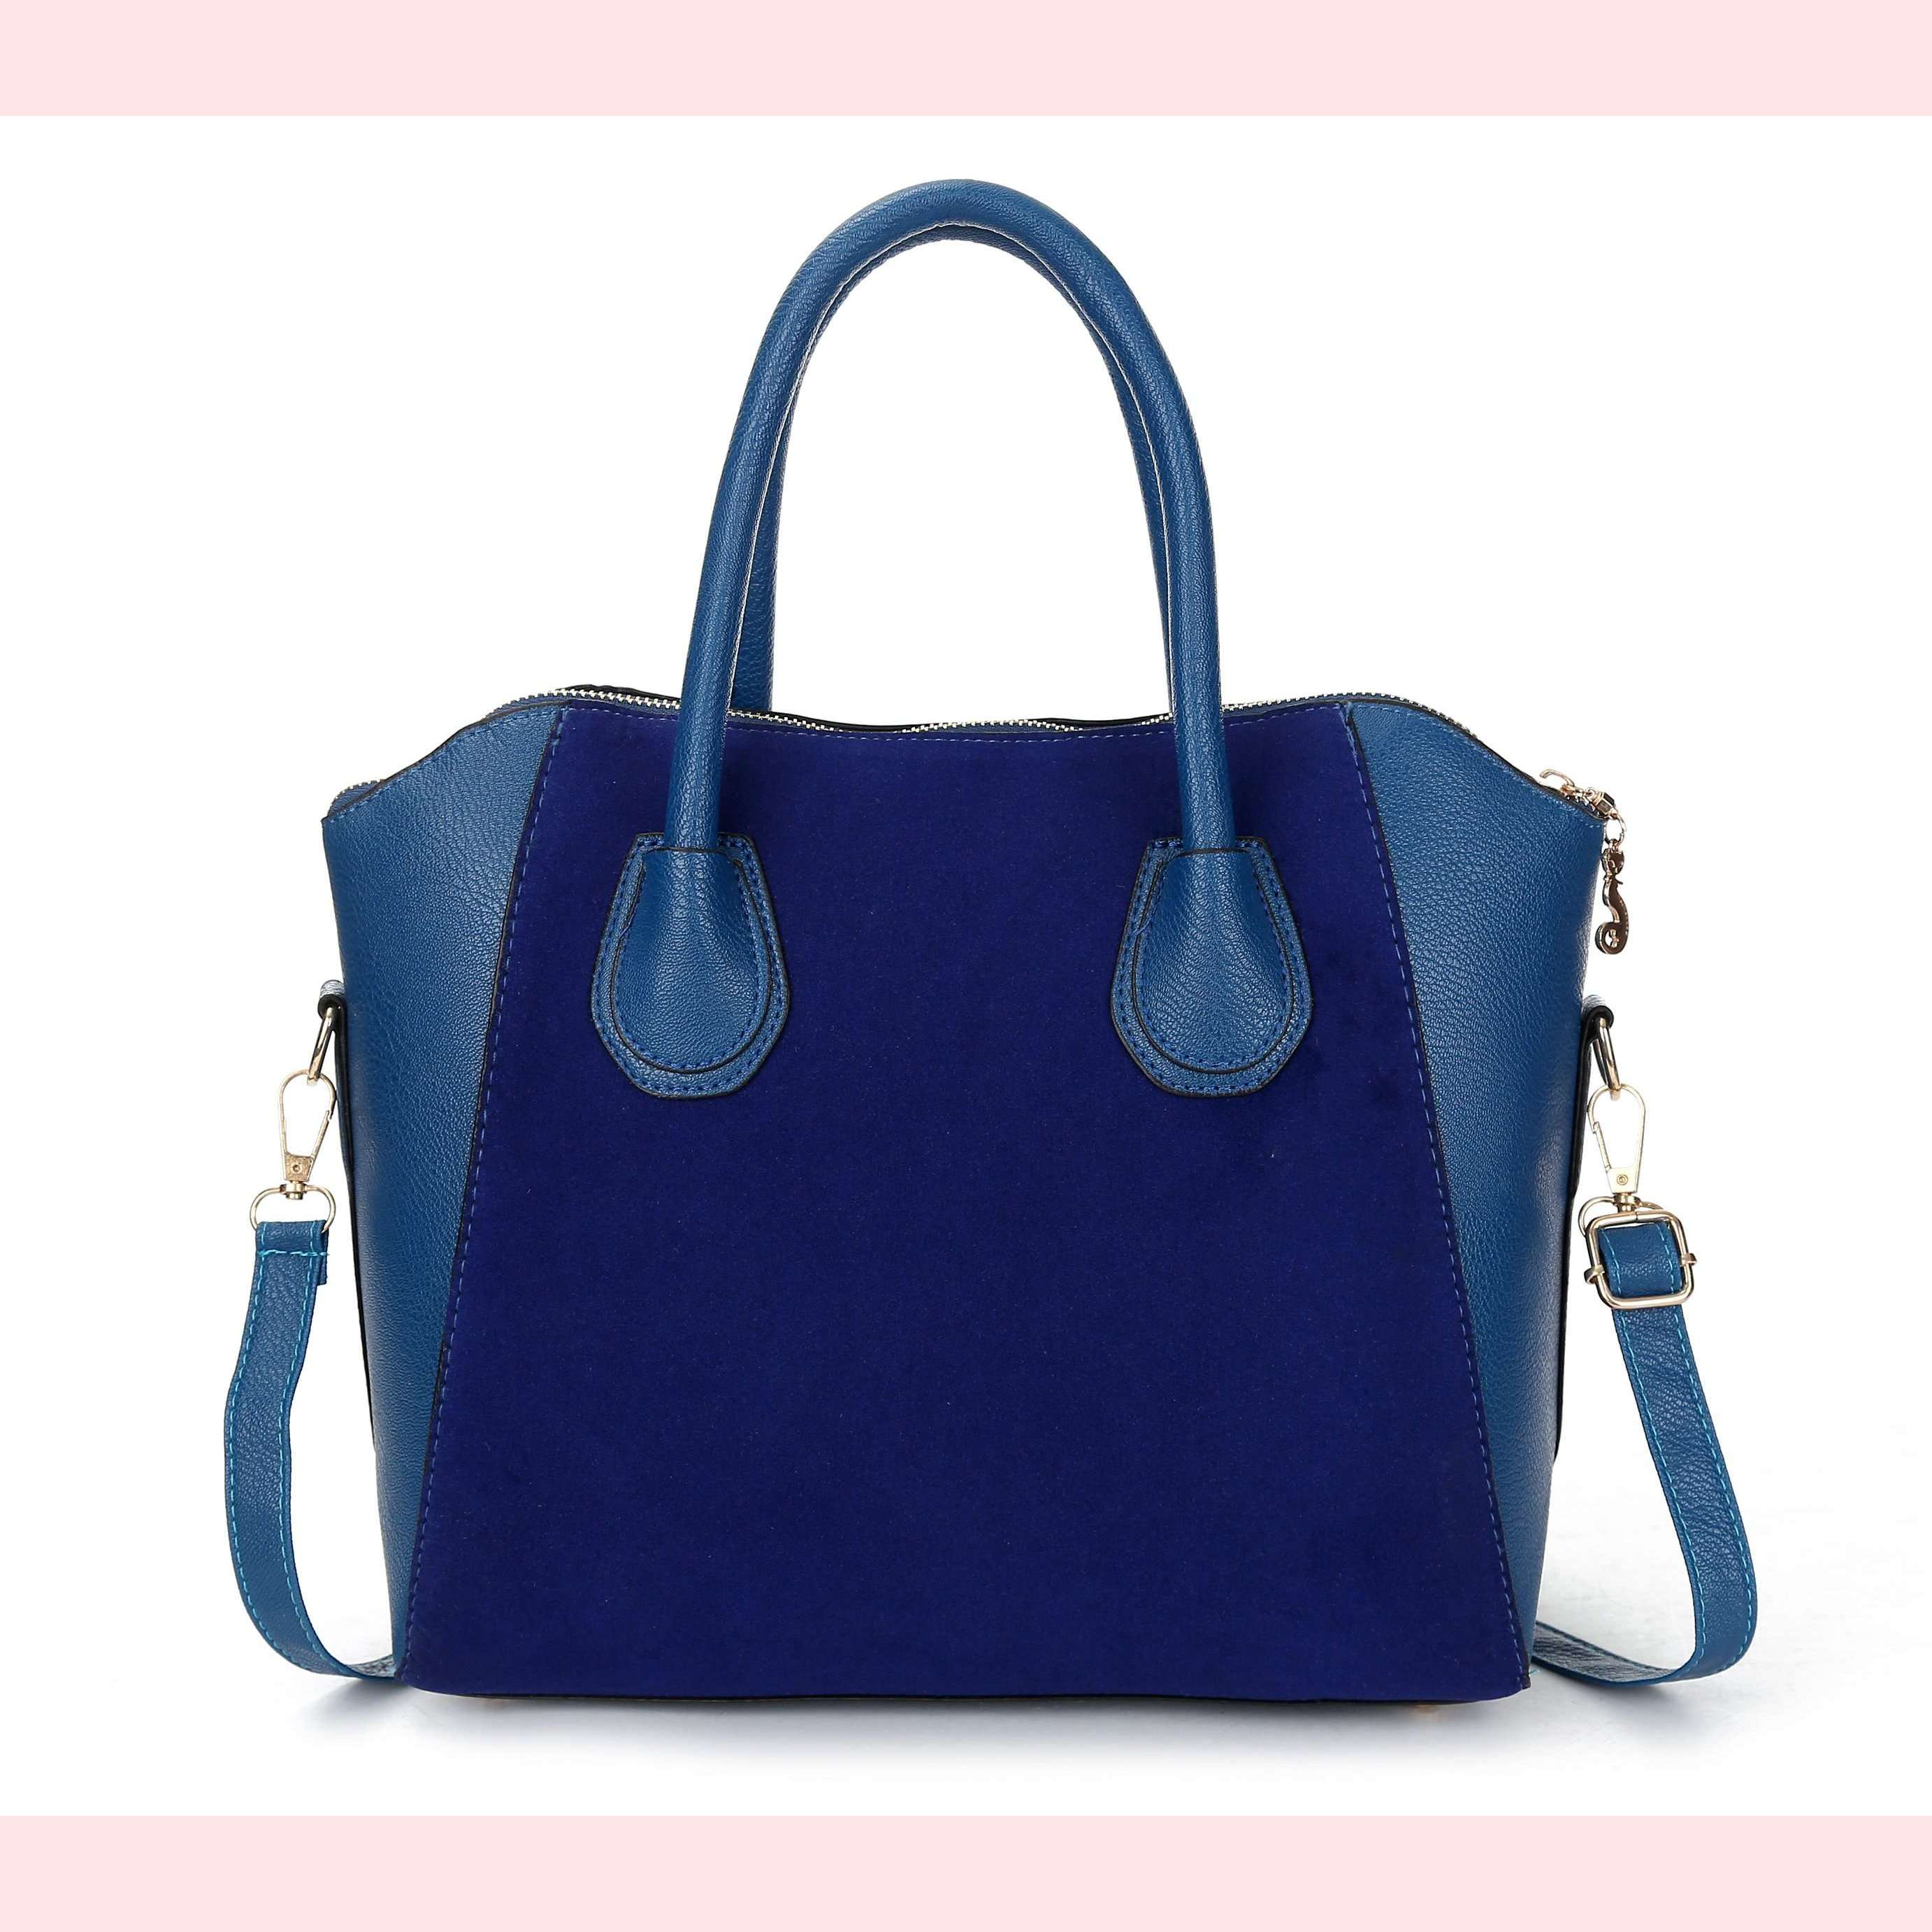 Angela Faux Leather Handbag,Blissful Chic,Blue